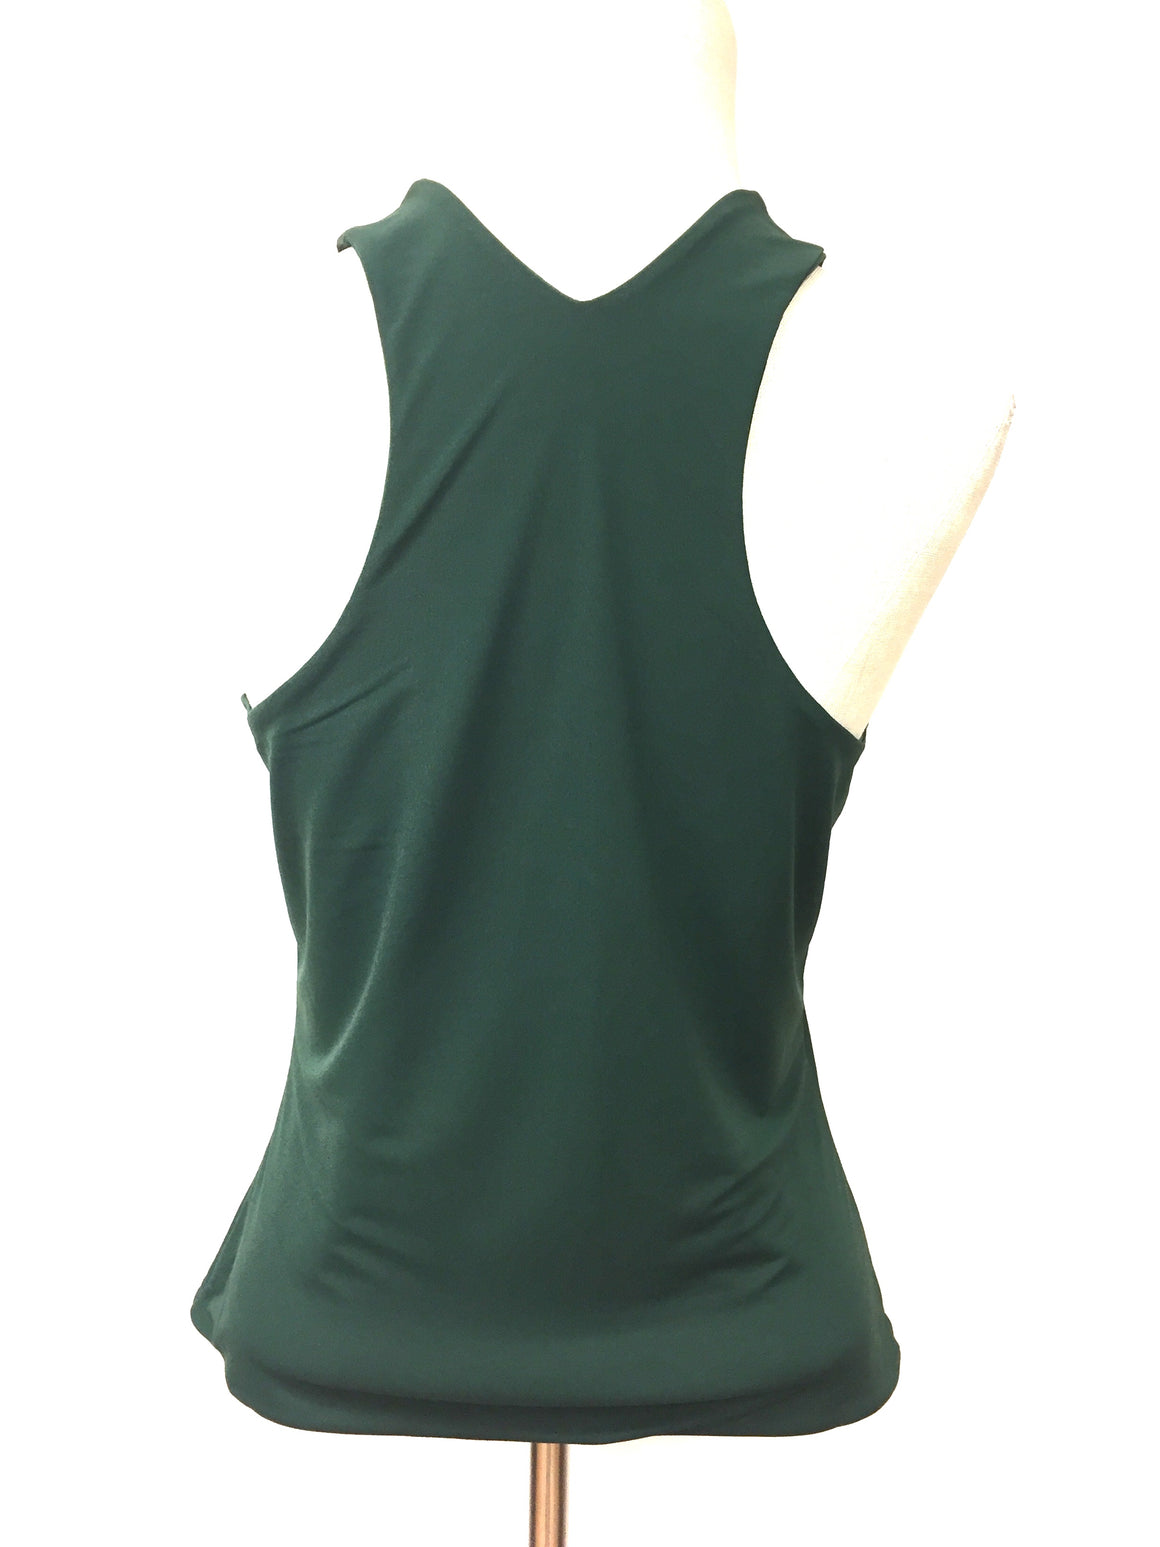 OMO NORMA KAMALI Vintage Forest-Green Polyester Racer-Back Tank Top Camisole